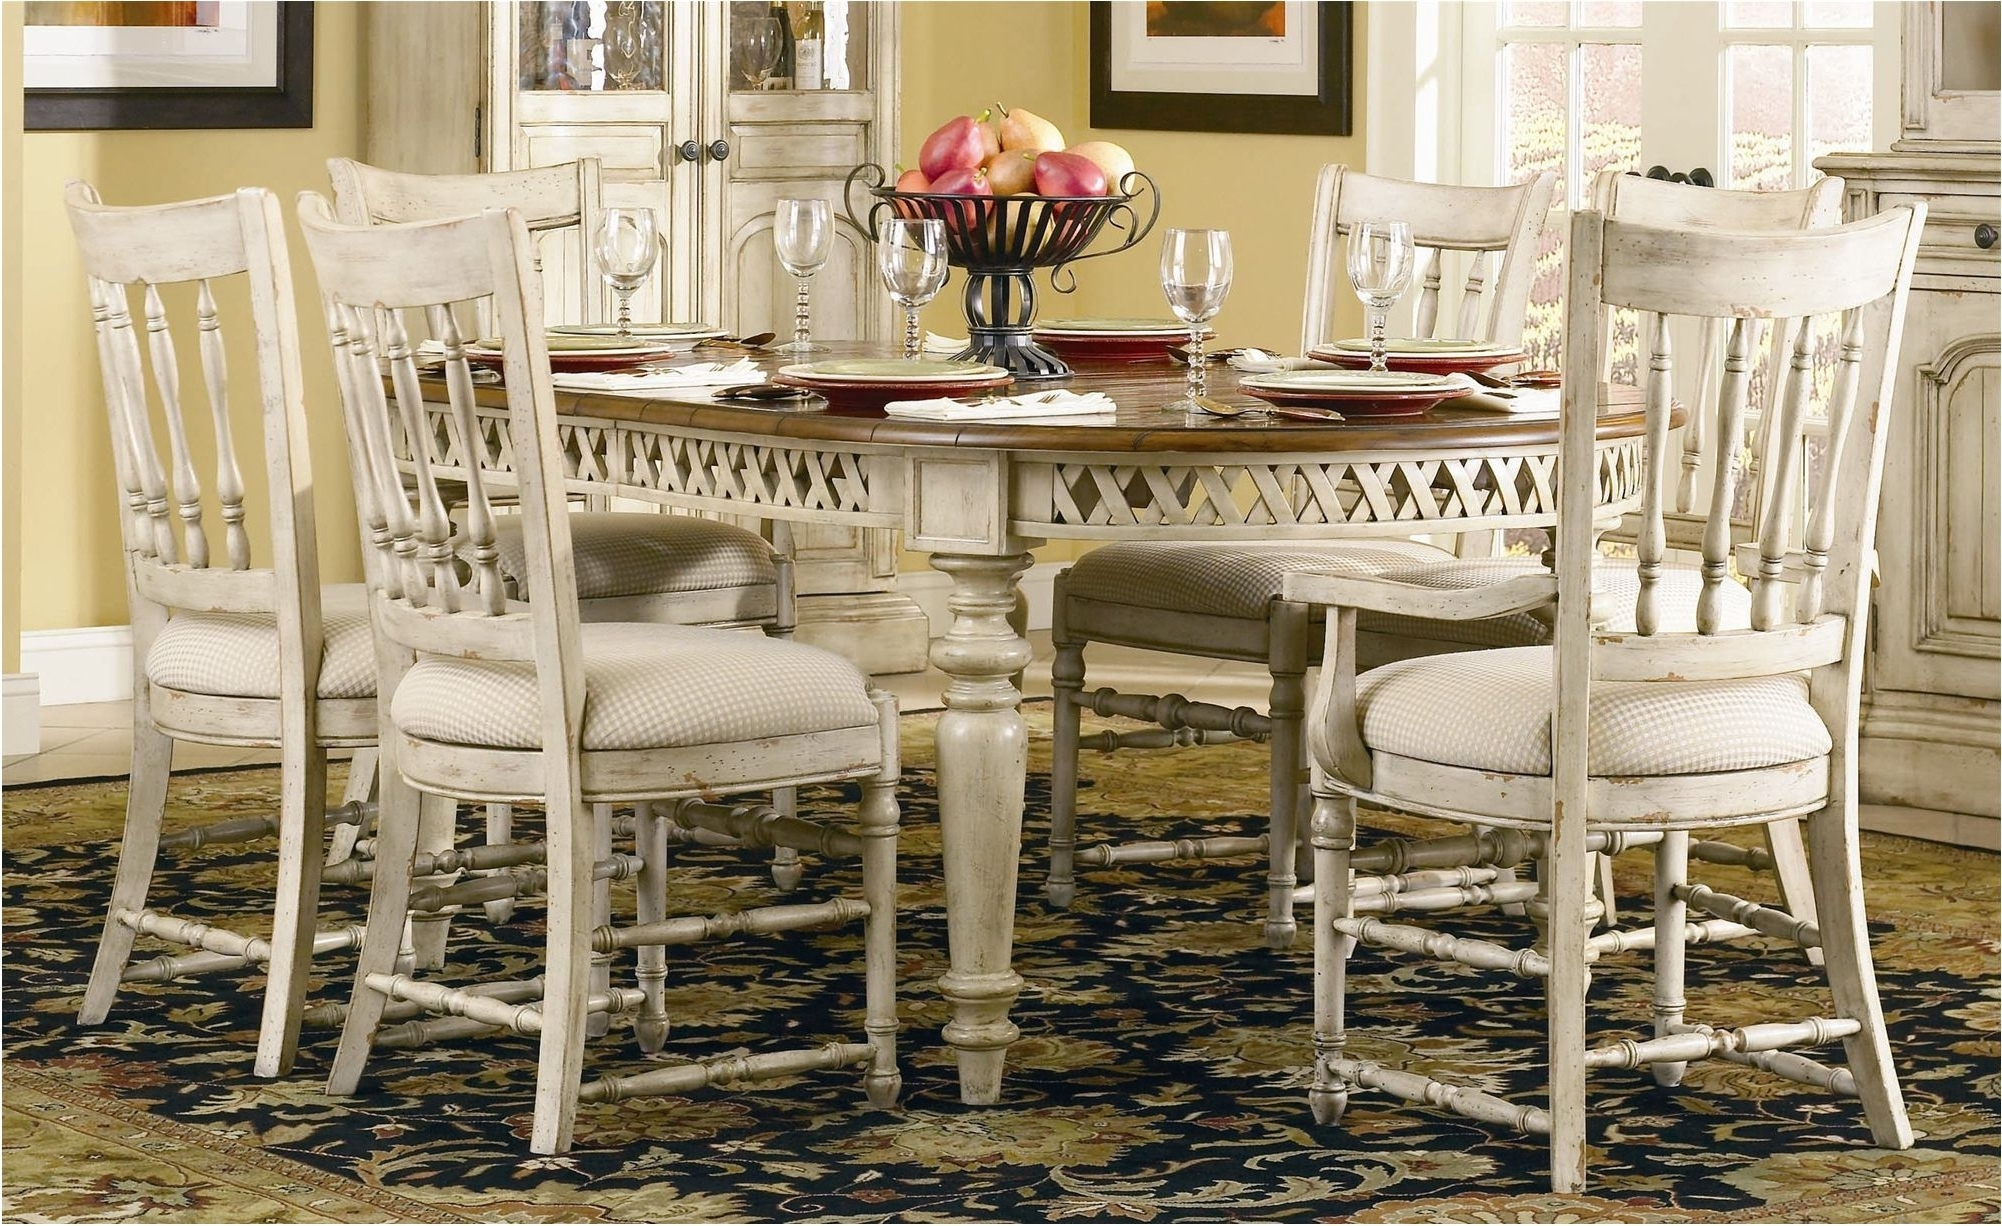 Unbelievable Unique French Country Style Dining Table And Chairs inside Famous Country Dining Tables